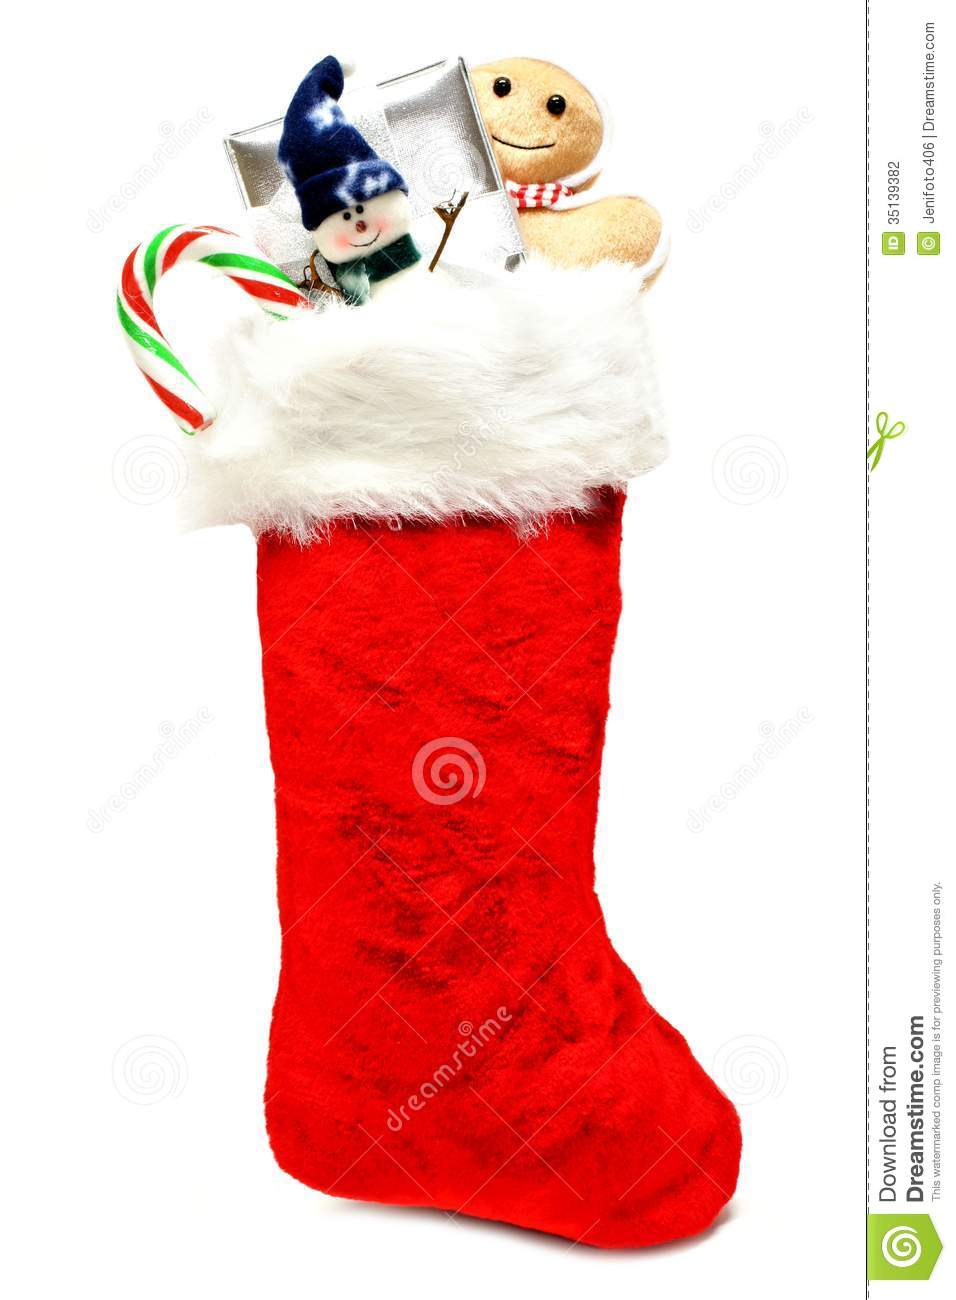 Candy Filled Christmas Stockings